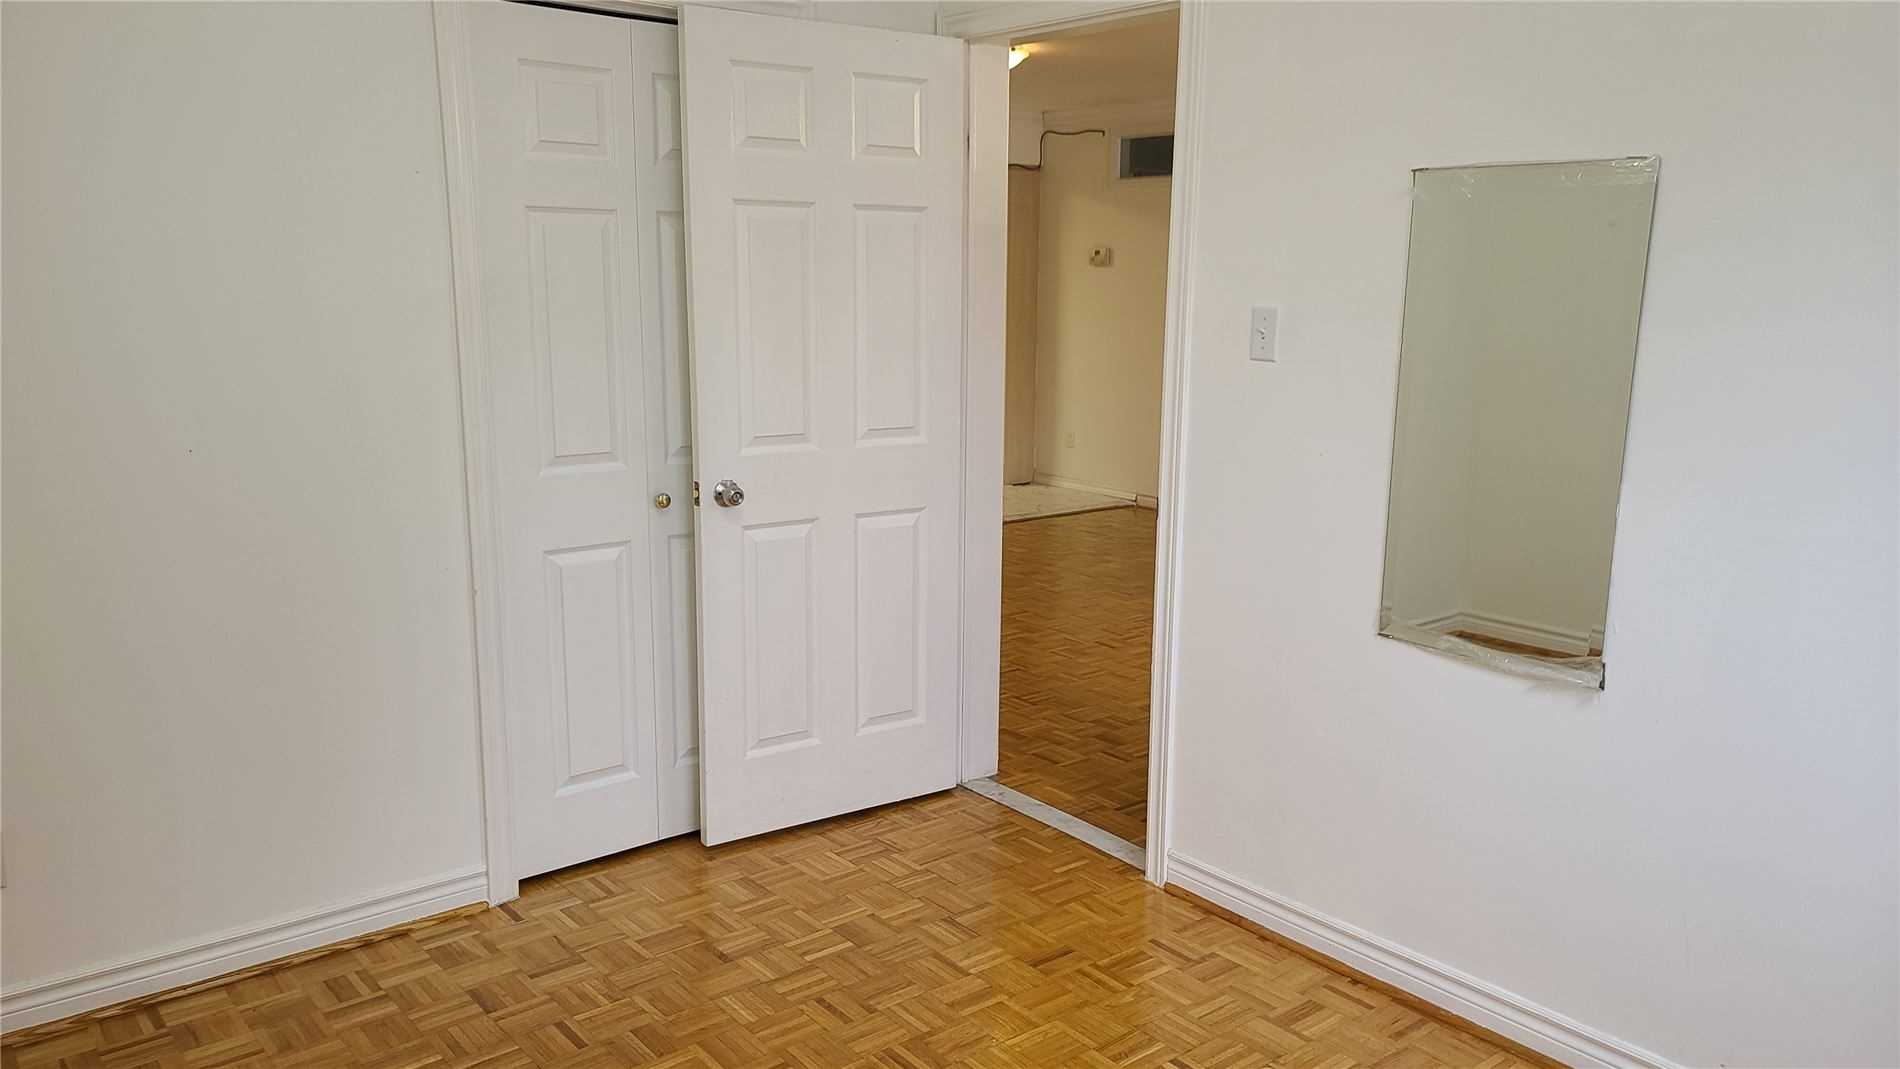 Image 11 of 13 showing inside of 2 Bedroom Detached 2-Storey for Lease at 217 Finch Ave W, Toronto M2R1M2